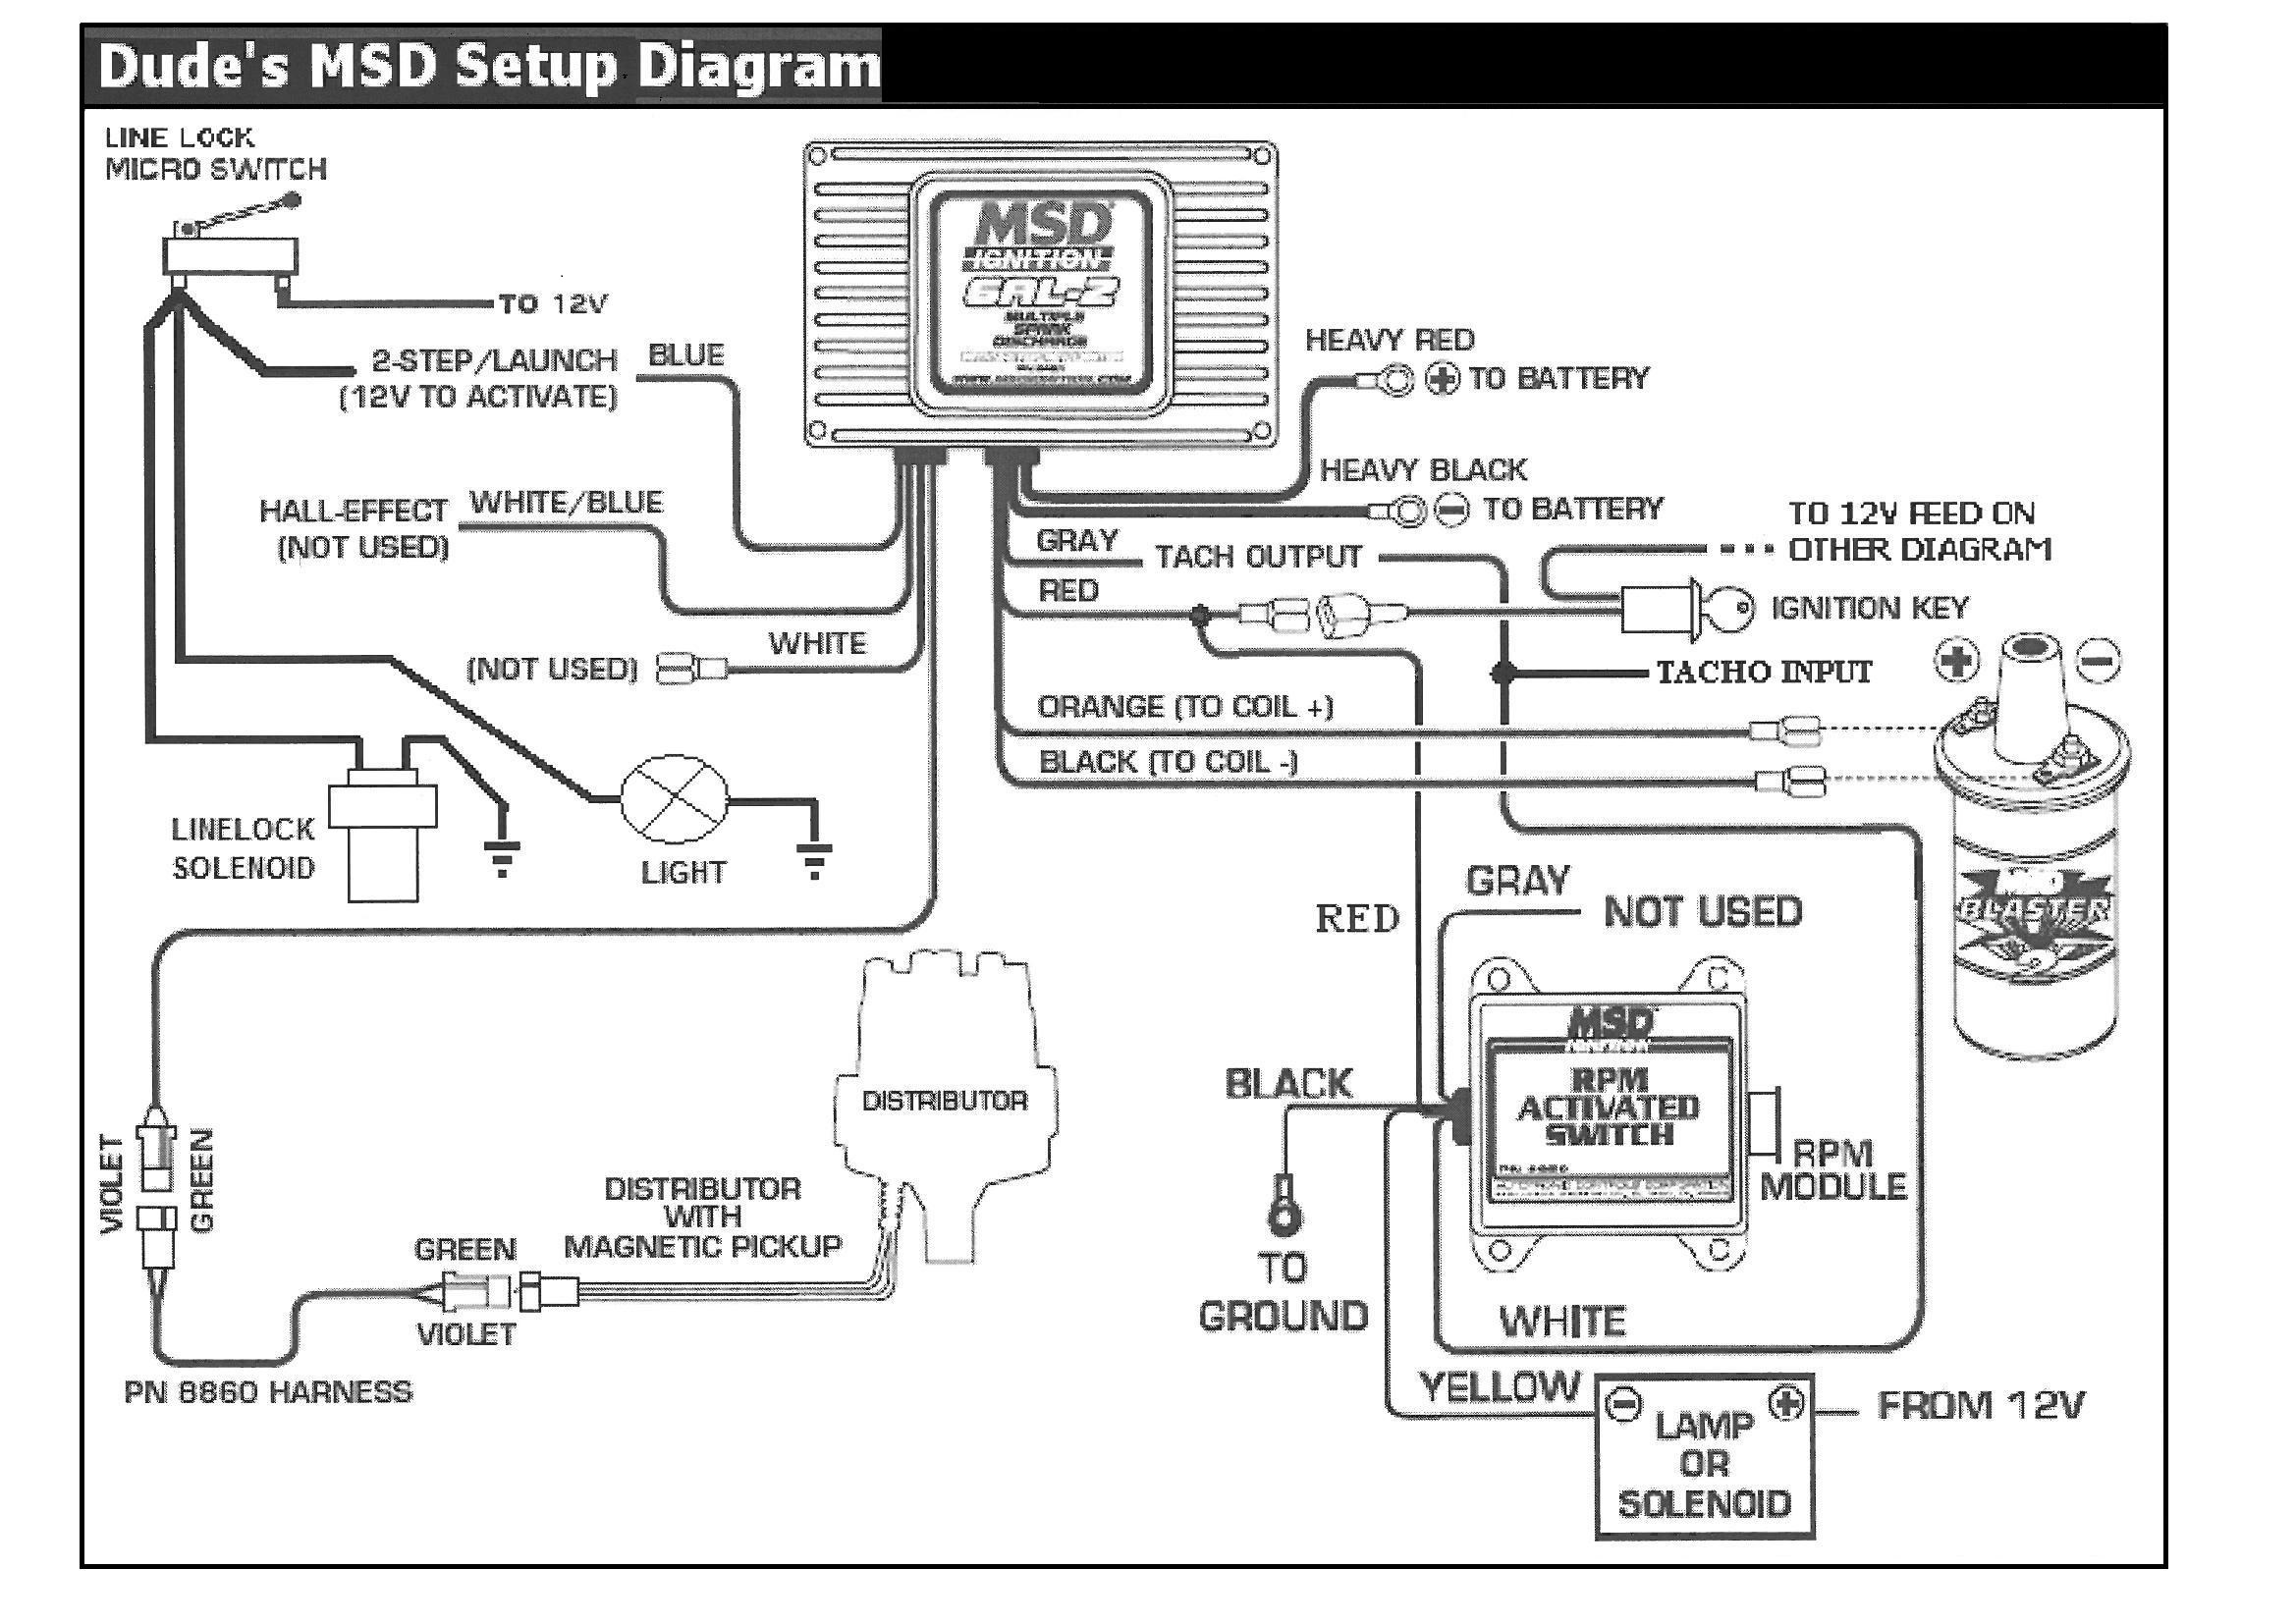 tel tac tachometer wiring diagram   33 wiring diagram images